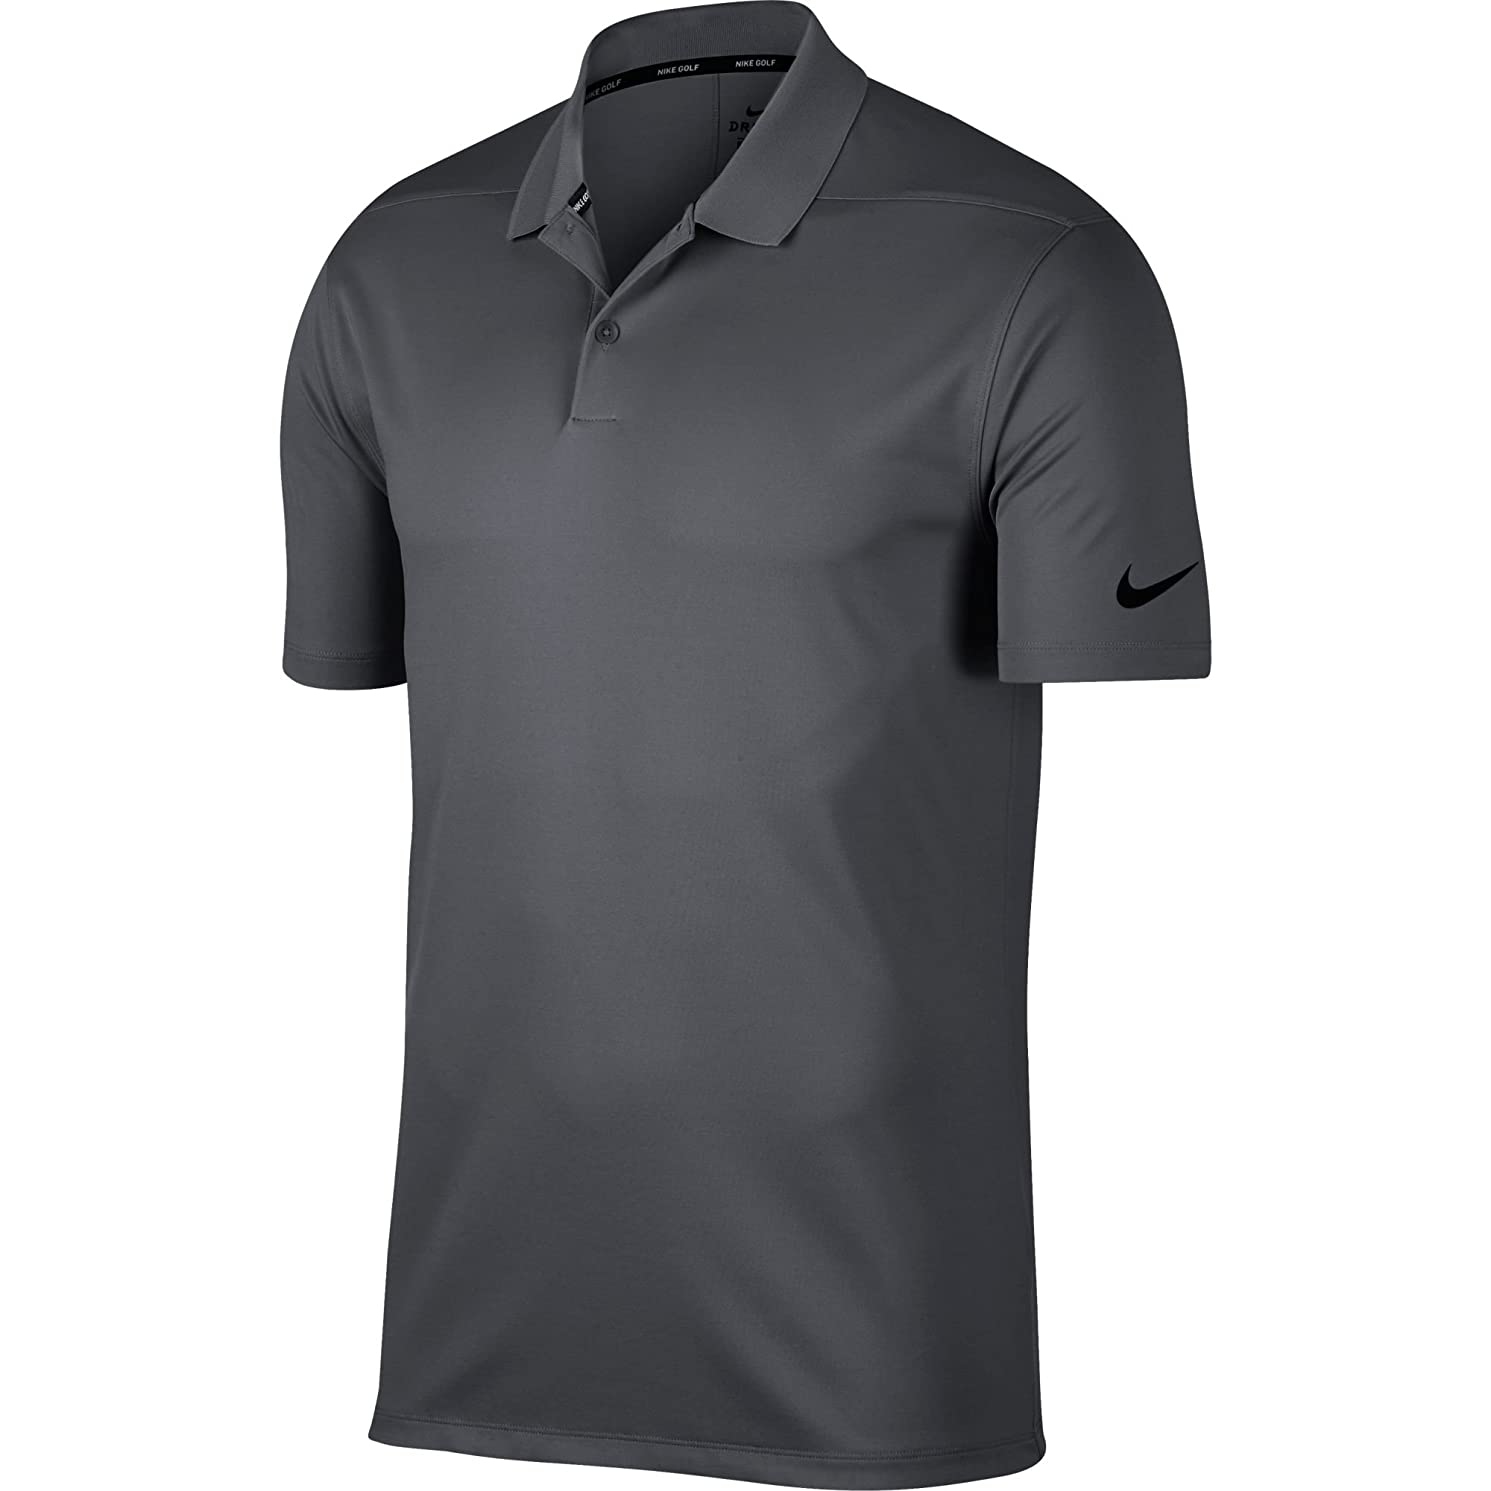 NIKE Men's Dry Victory Solid Golf Polo Shirt